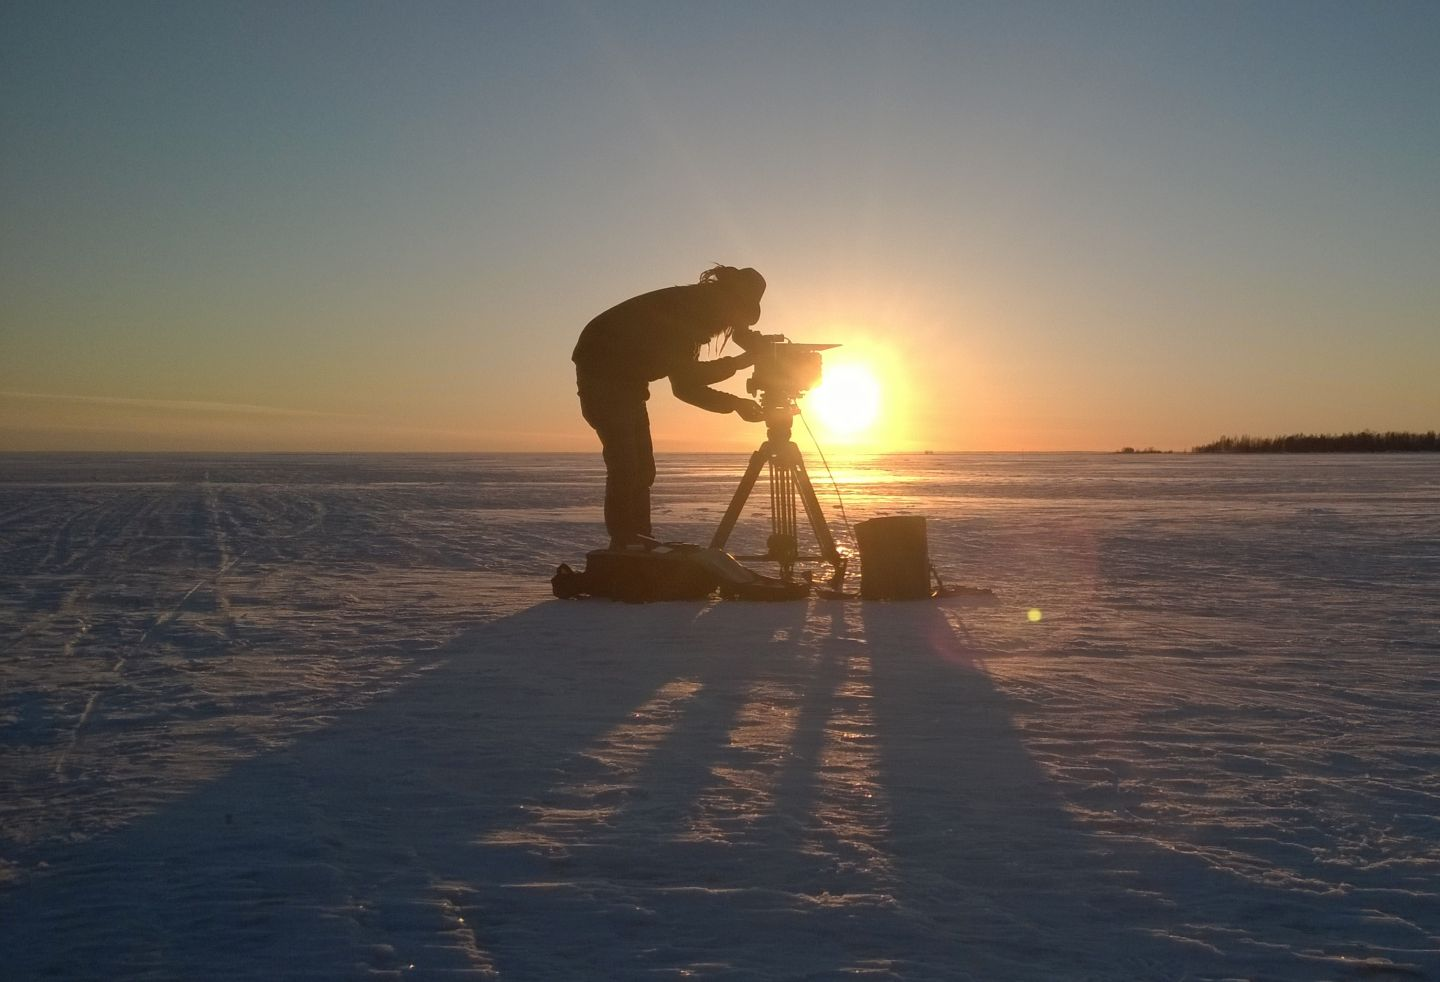 Filming on the snow against a sunrise